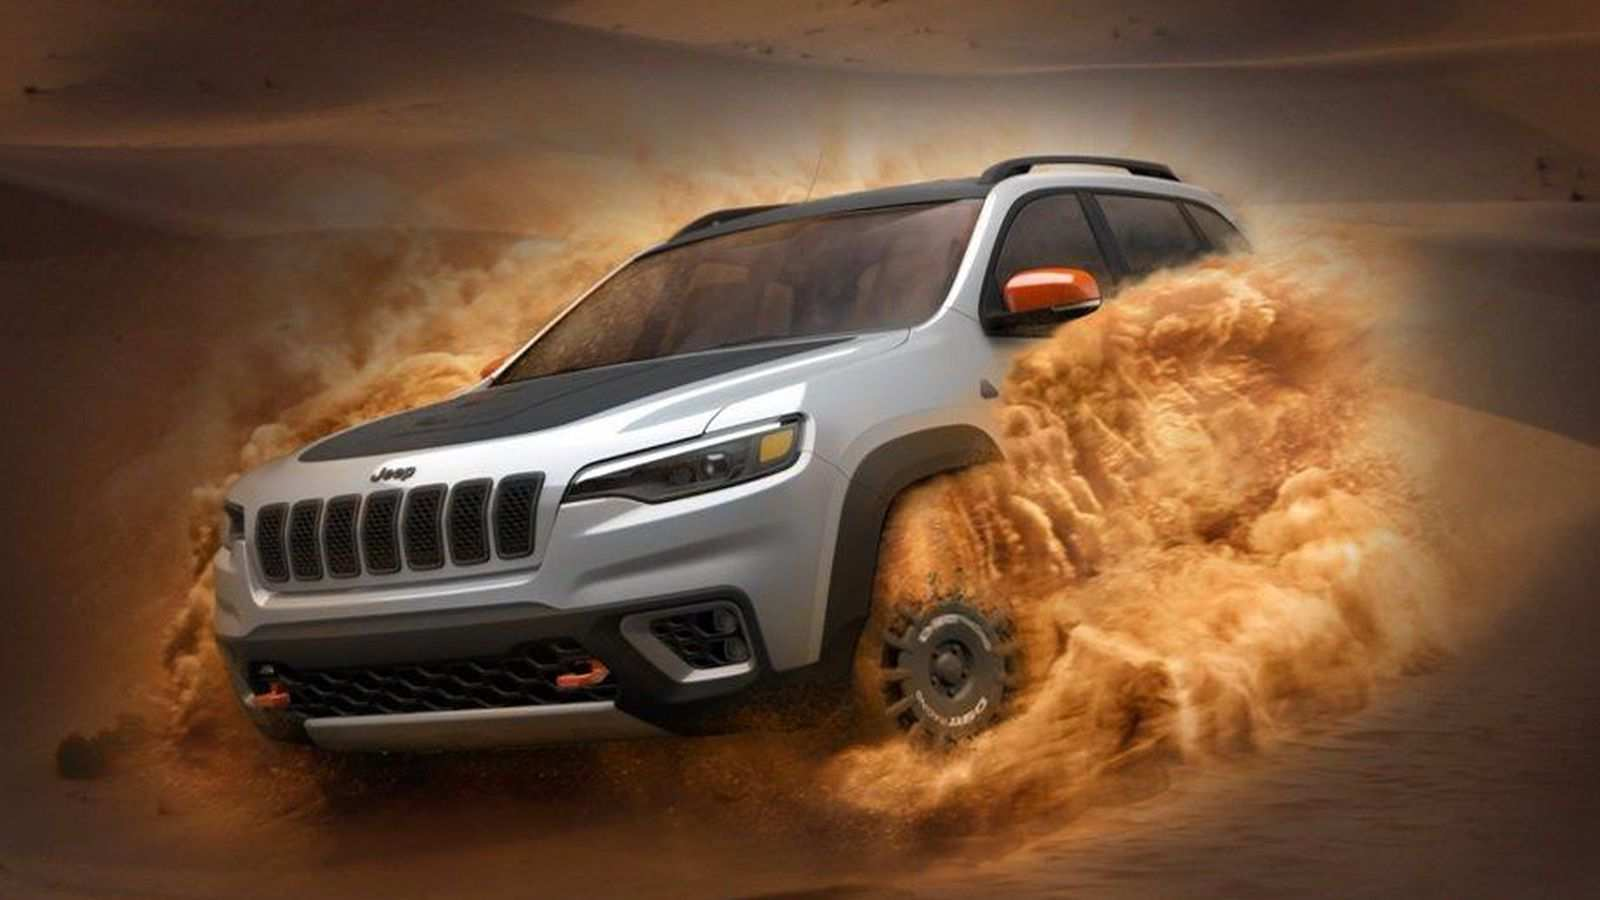 71 Concept of 2020 Jeep Lineup Concept for 2020 Jeep Lineup